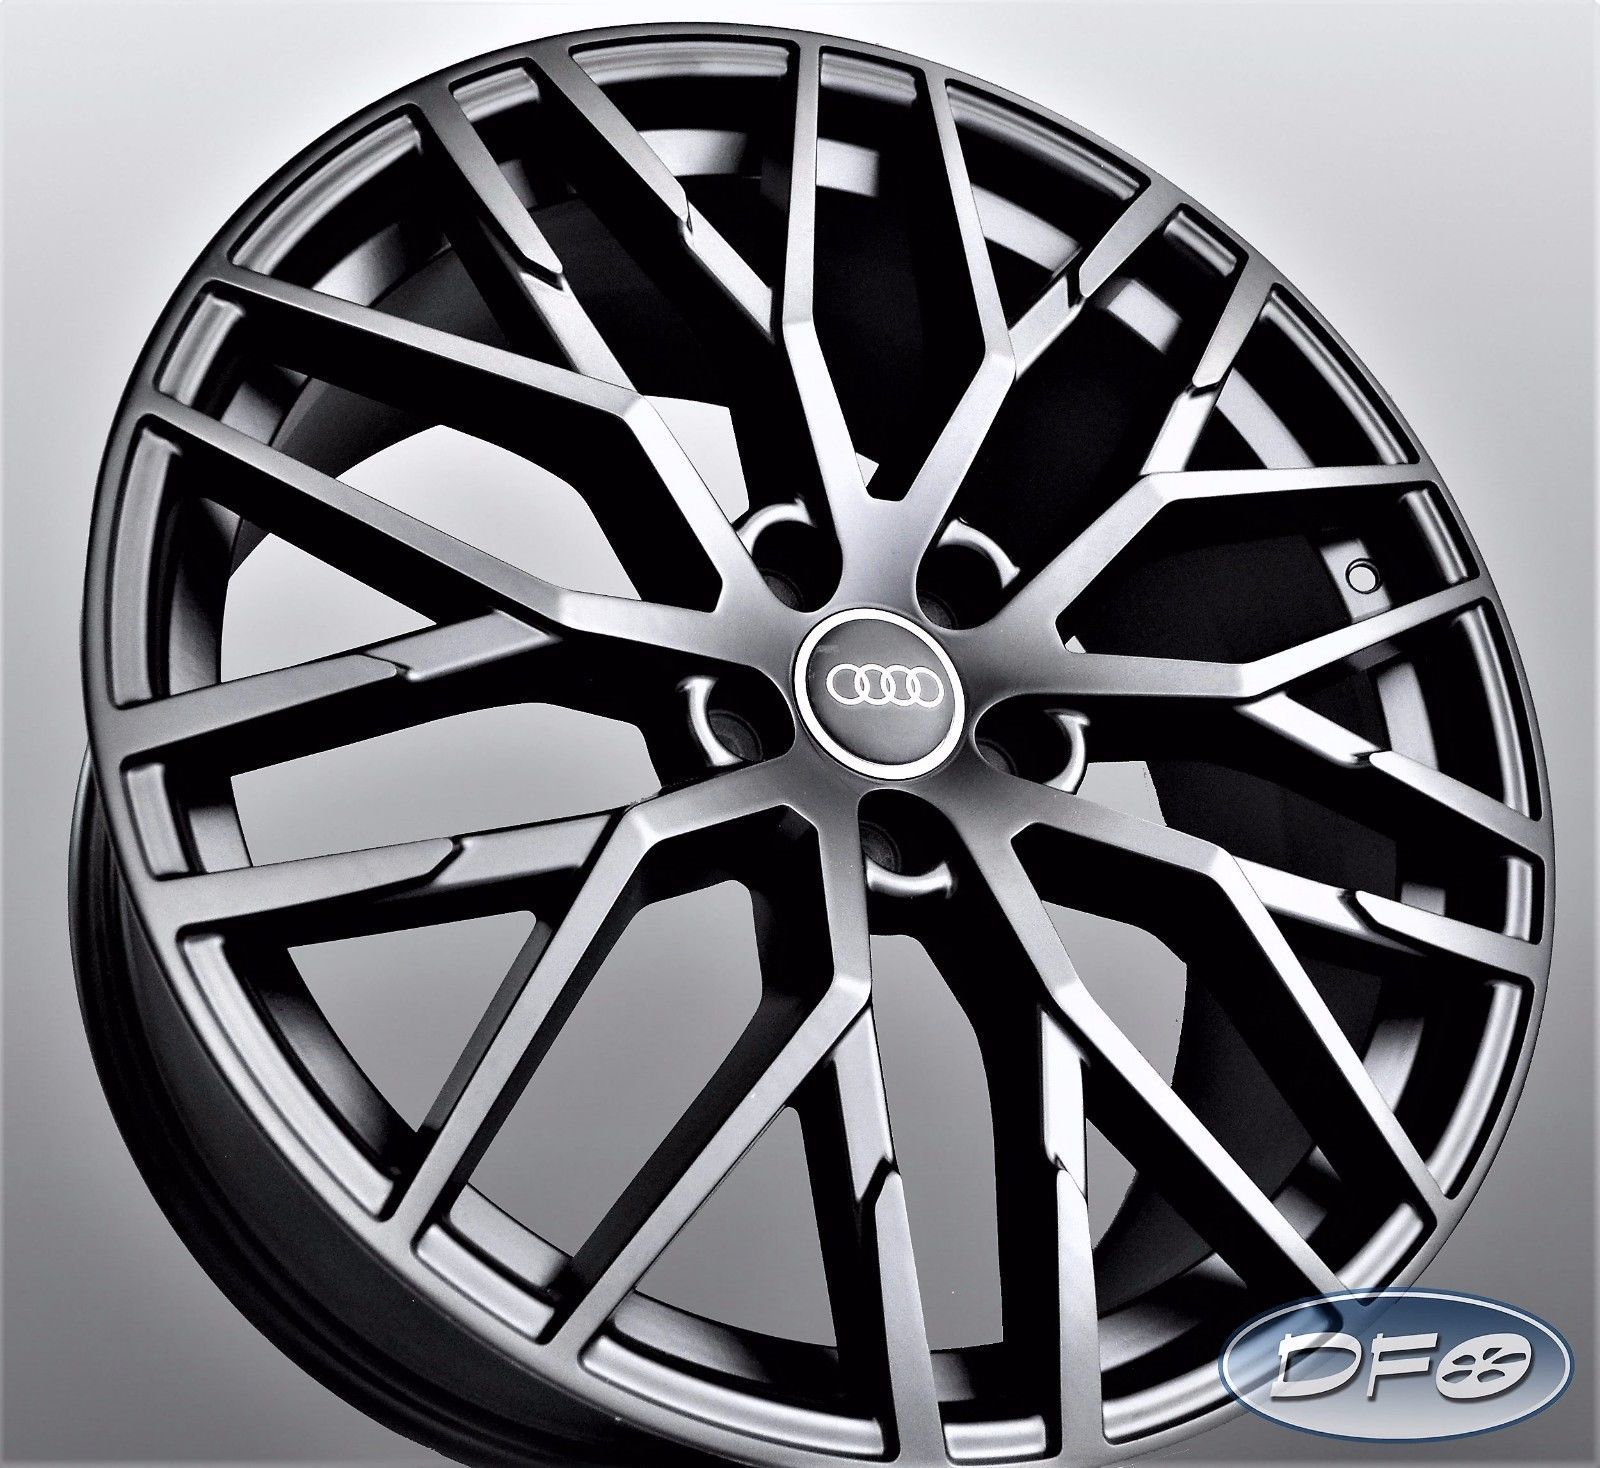 20 2017 R8 Style Black Wheel Rims Fit Audi A4 A6 A8 S4 S6 S8 Rs4 Rs6 1349 Mb Ebay Wheel Rims Black Wheels Audi